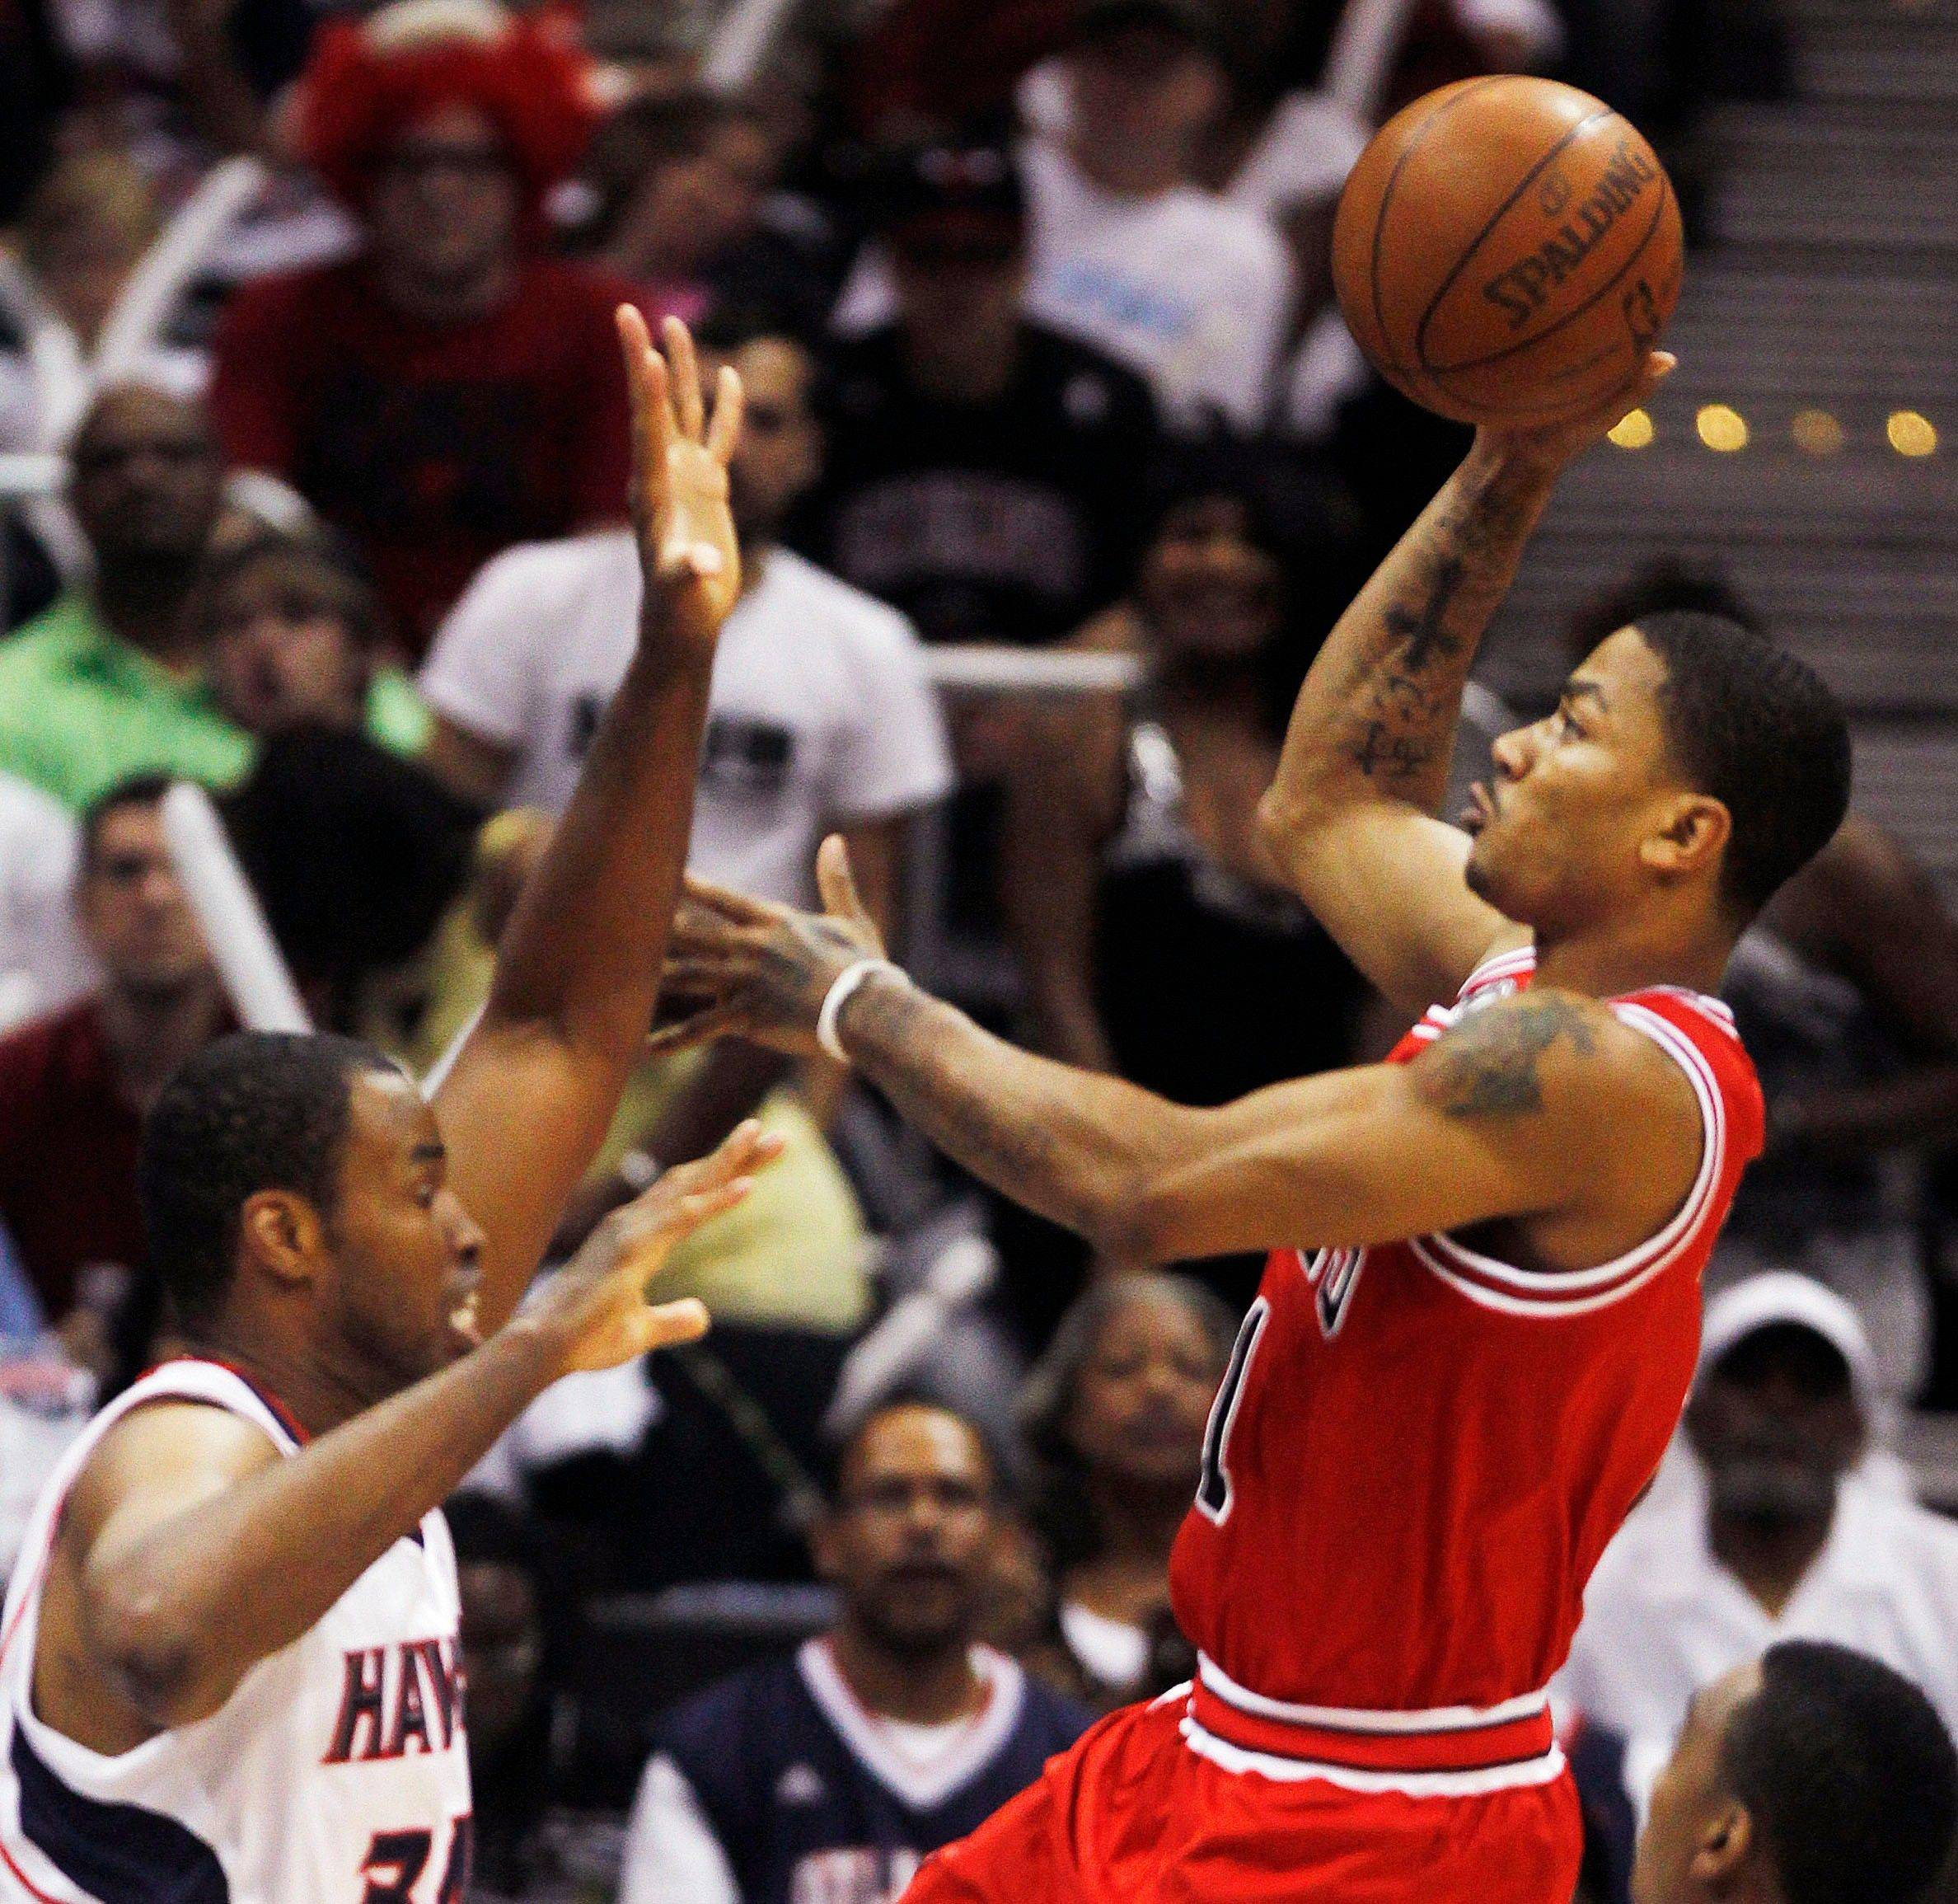 Derrick Rose (1) shoots as Atlanta Hawks center Jason Collins (34) defends in the first quarter.